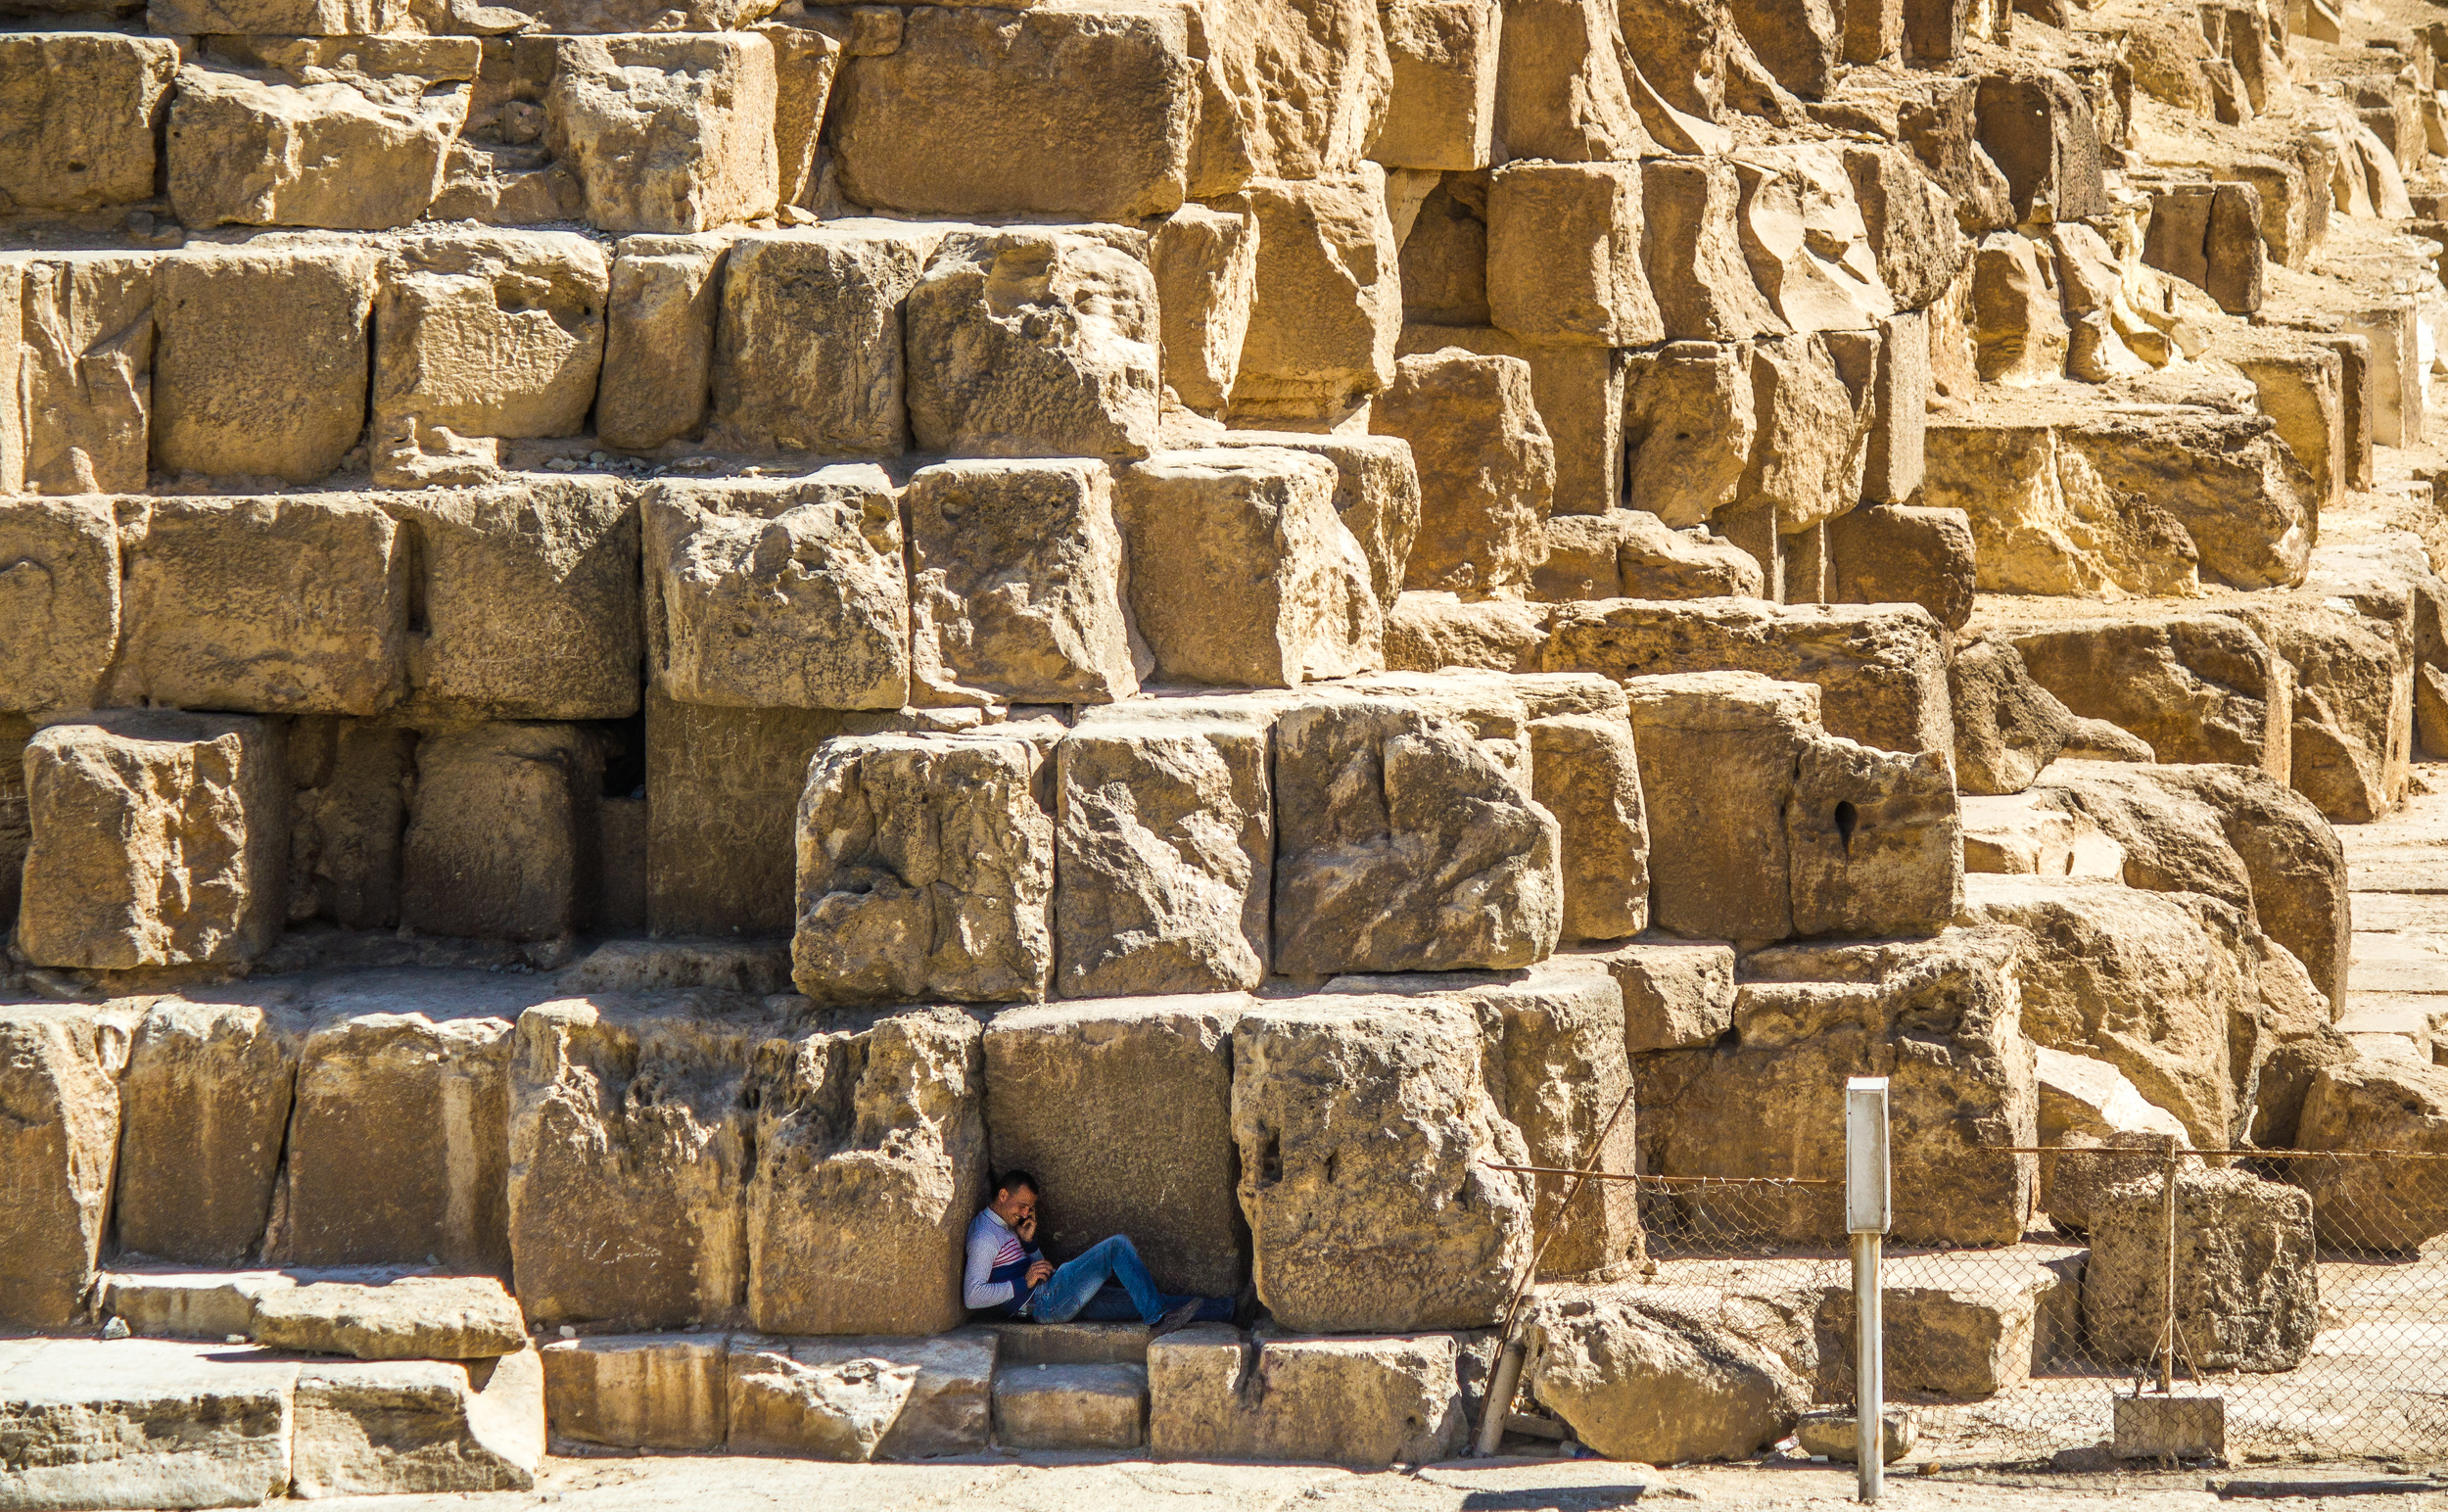 Phone call at the Pyramids